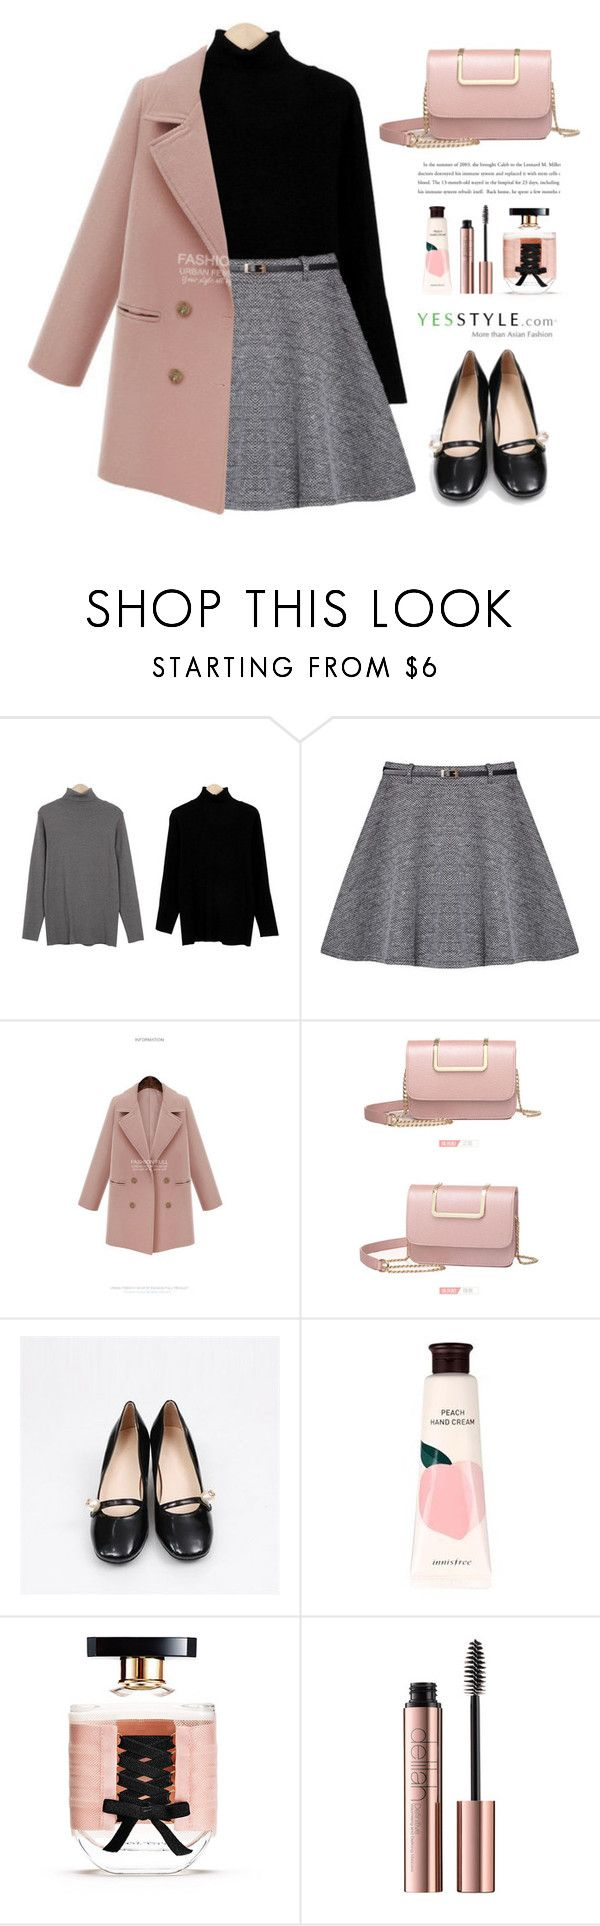 """""""YesStyle - 10% off coupon"""" by yexyka ❤ liked on Polyvore featuring Sugar Town, BeiBaoBao, Innisfree, Victoria's Secret, yesstyle and prefall"""